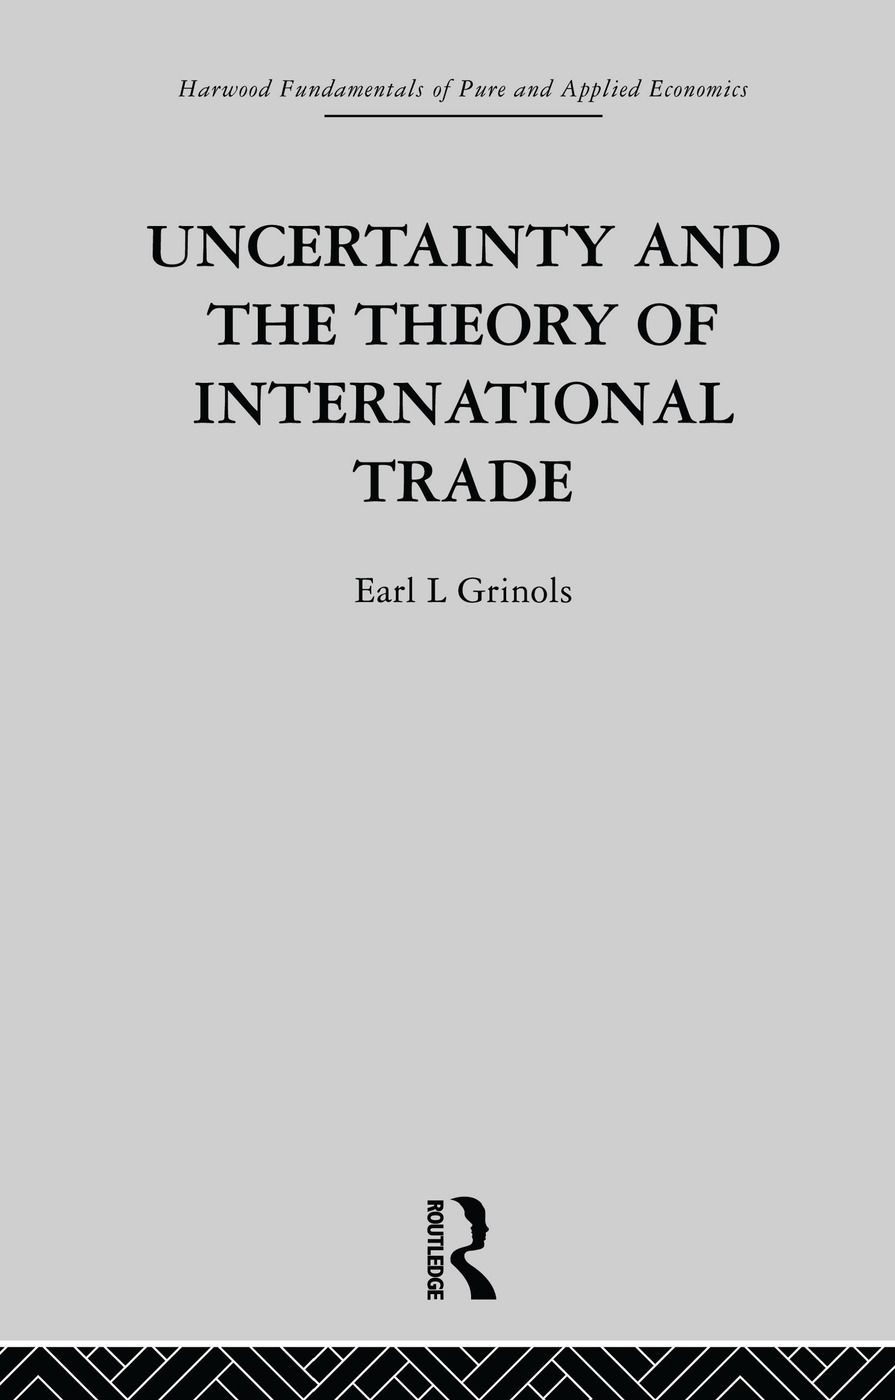 Uncertainty and the Theory of International Trade